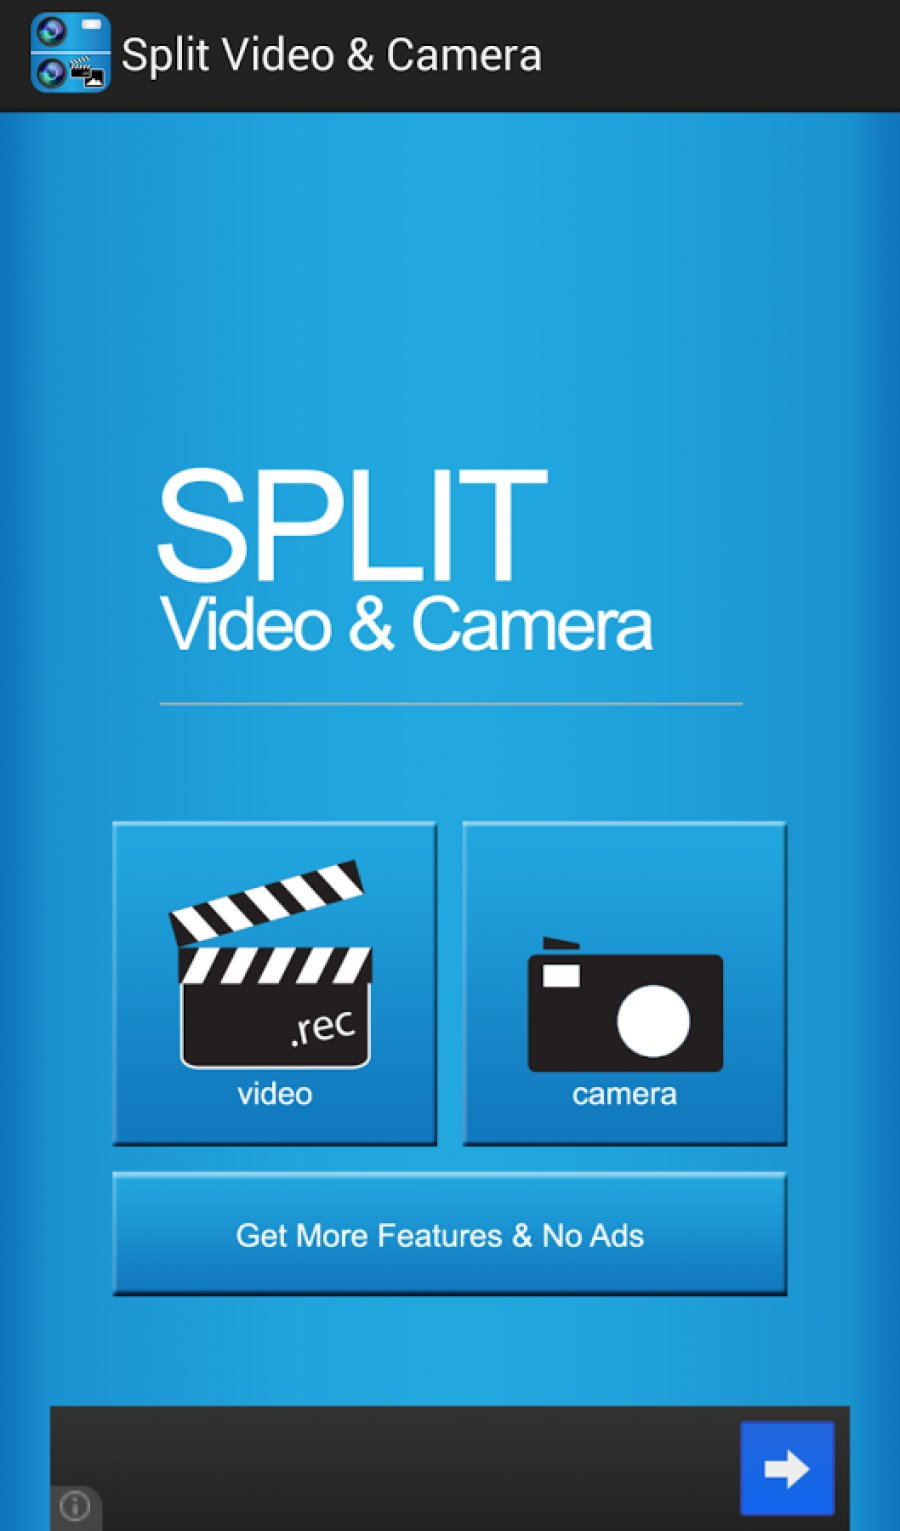 Split Video & Camera Apk For Android - Approm org Best site for MOD